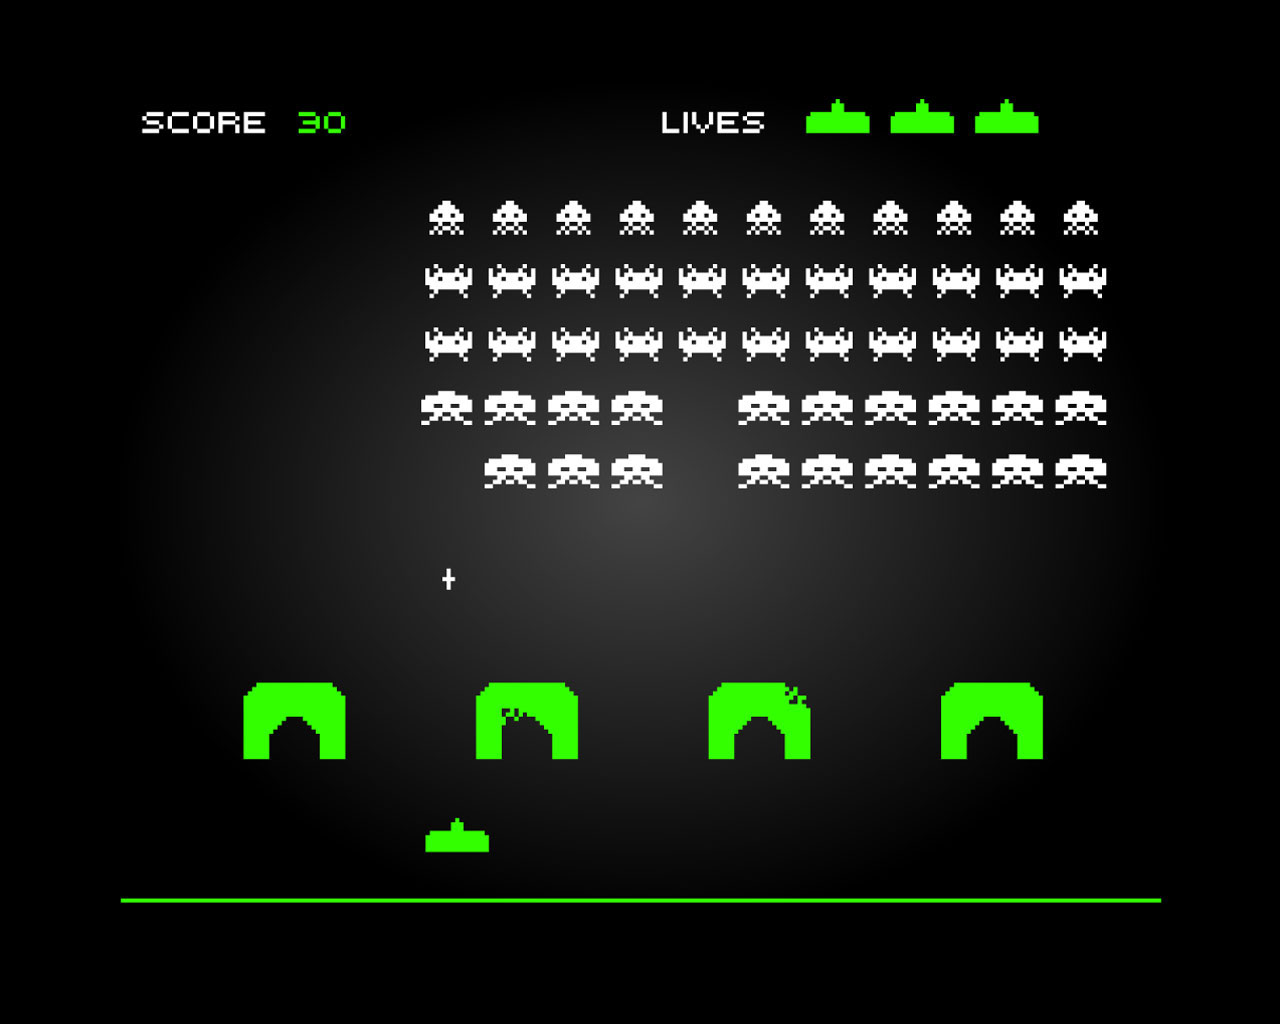 Free Space Invaders Wallpaper 37590 1920x1080 px